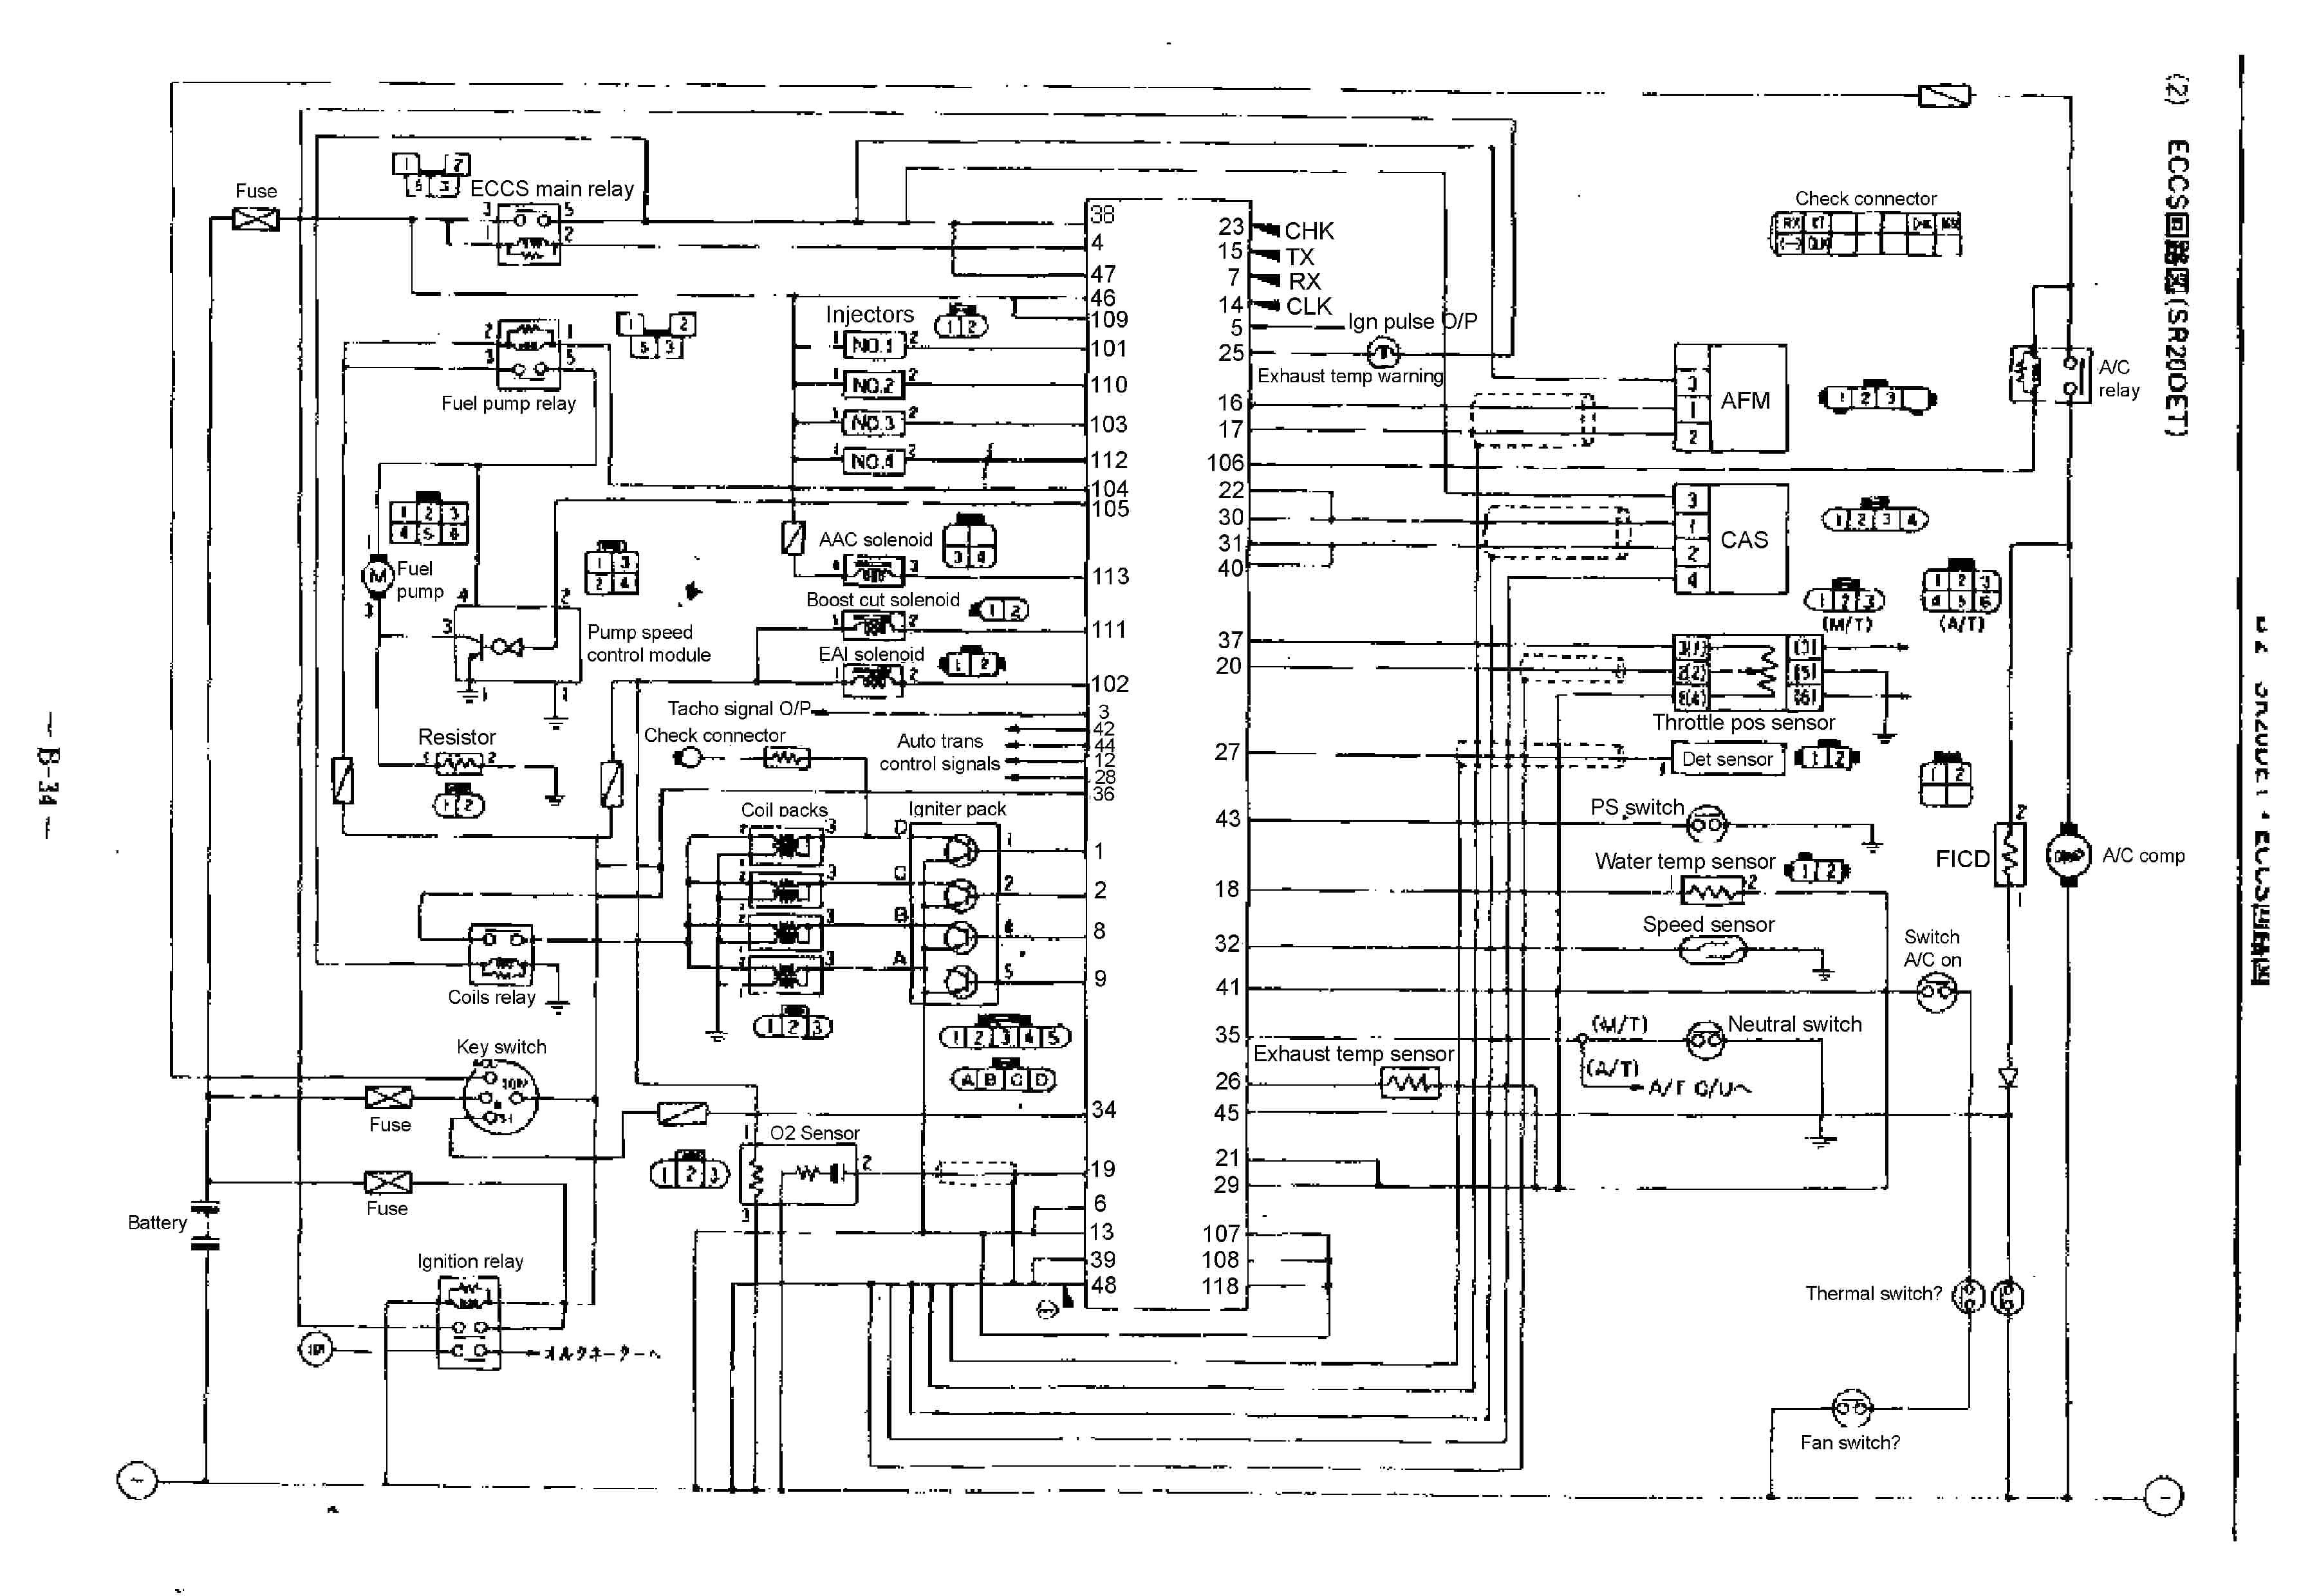 2005 Nissan Altima Engine Diagram Nissan Wiring Diagrams Of 2005 Nissan  Altima Engine Diagram 2000 Maxima